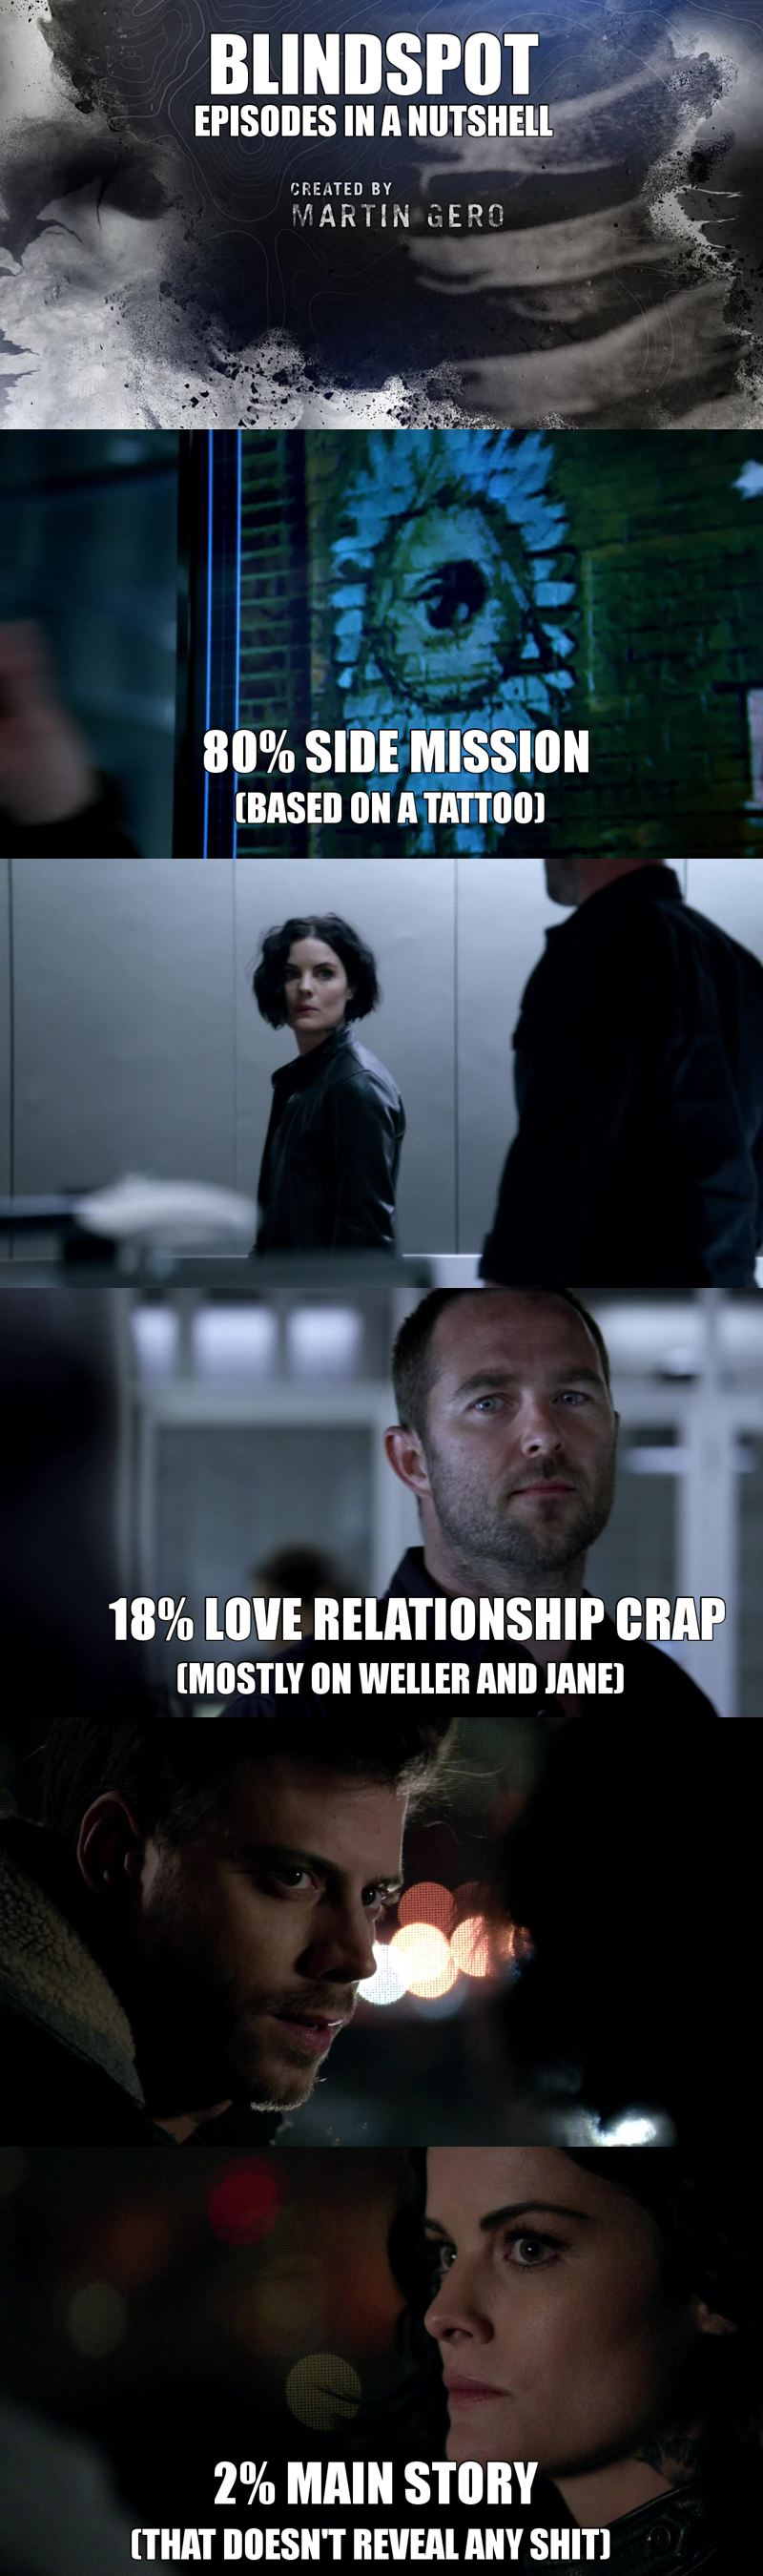 """That's basically every """"Blindspot"""" episode so far.   80% based on a side mission triggered by anyone of Jane's tattoo. We're stuck with a case that sometimes are not even worth watching and leads to nowhere.   18% based on crap relationship stuff. Mostly on Weller and Jane crap. Now with Reed and Weller's sister too. Or Weller and that other agent. Or Jane and her cases from before the amnesia. blablabla   2% actual main story on what the hell happened with Jane and why she's doing whatever she's secretly doing. Everything leading to more questions or no answers at all.   I'm kinda getting tired... I'm here for those 2% and I'm not getting anything good on that."""